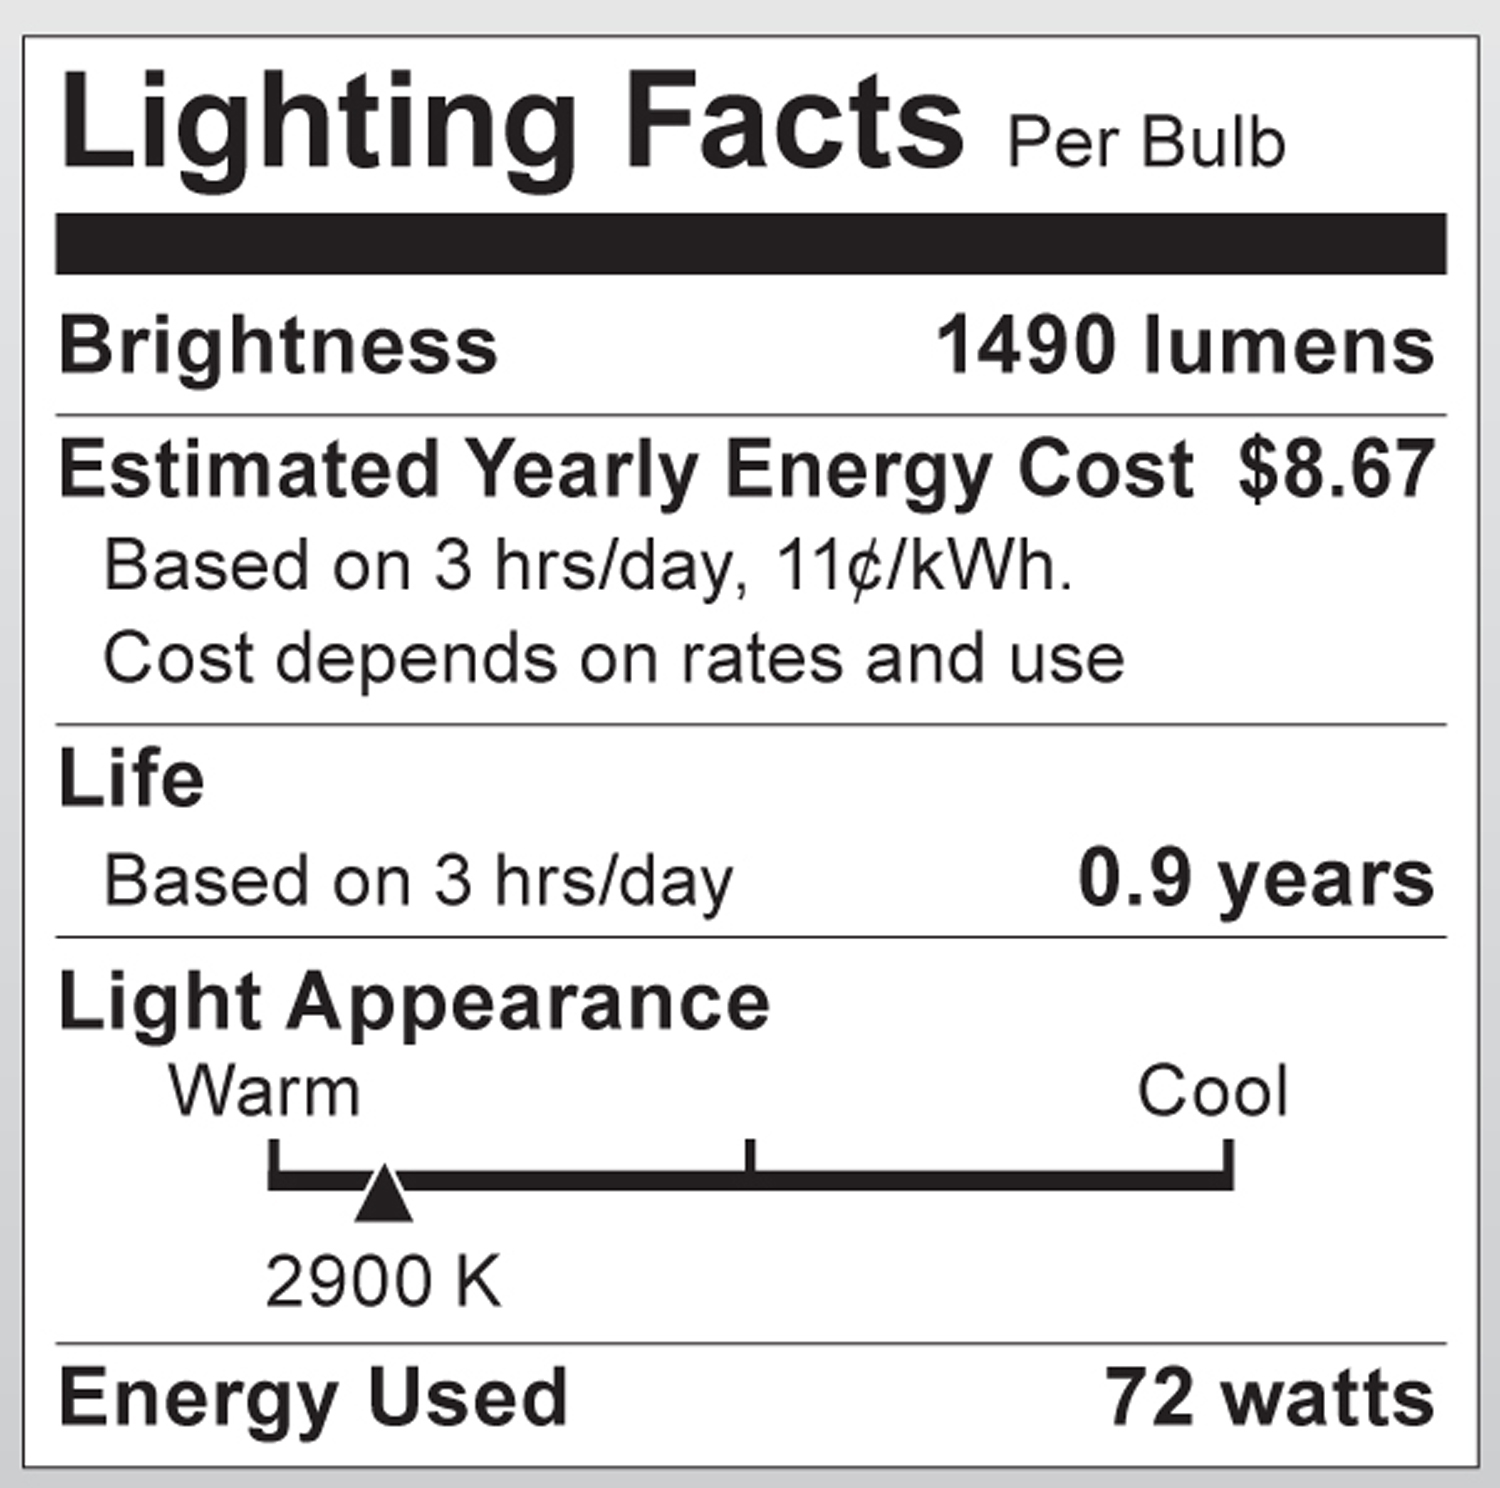 S2404 Lighting Fact Label